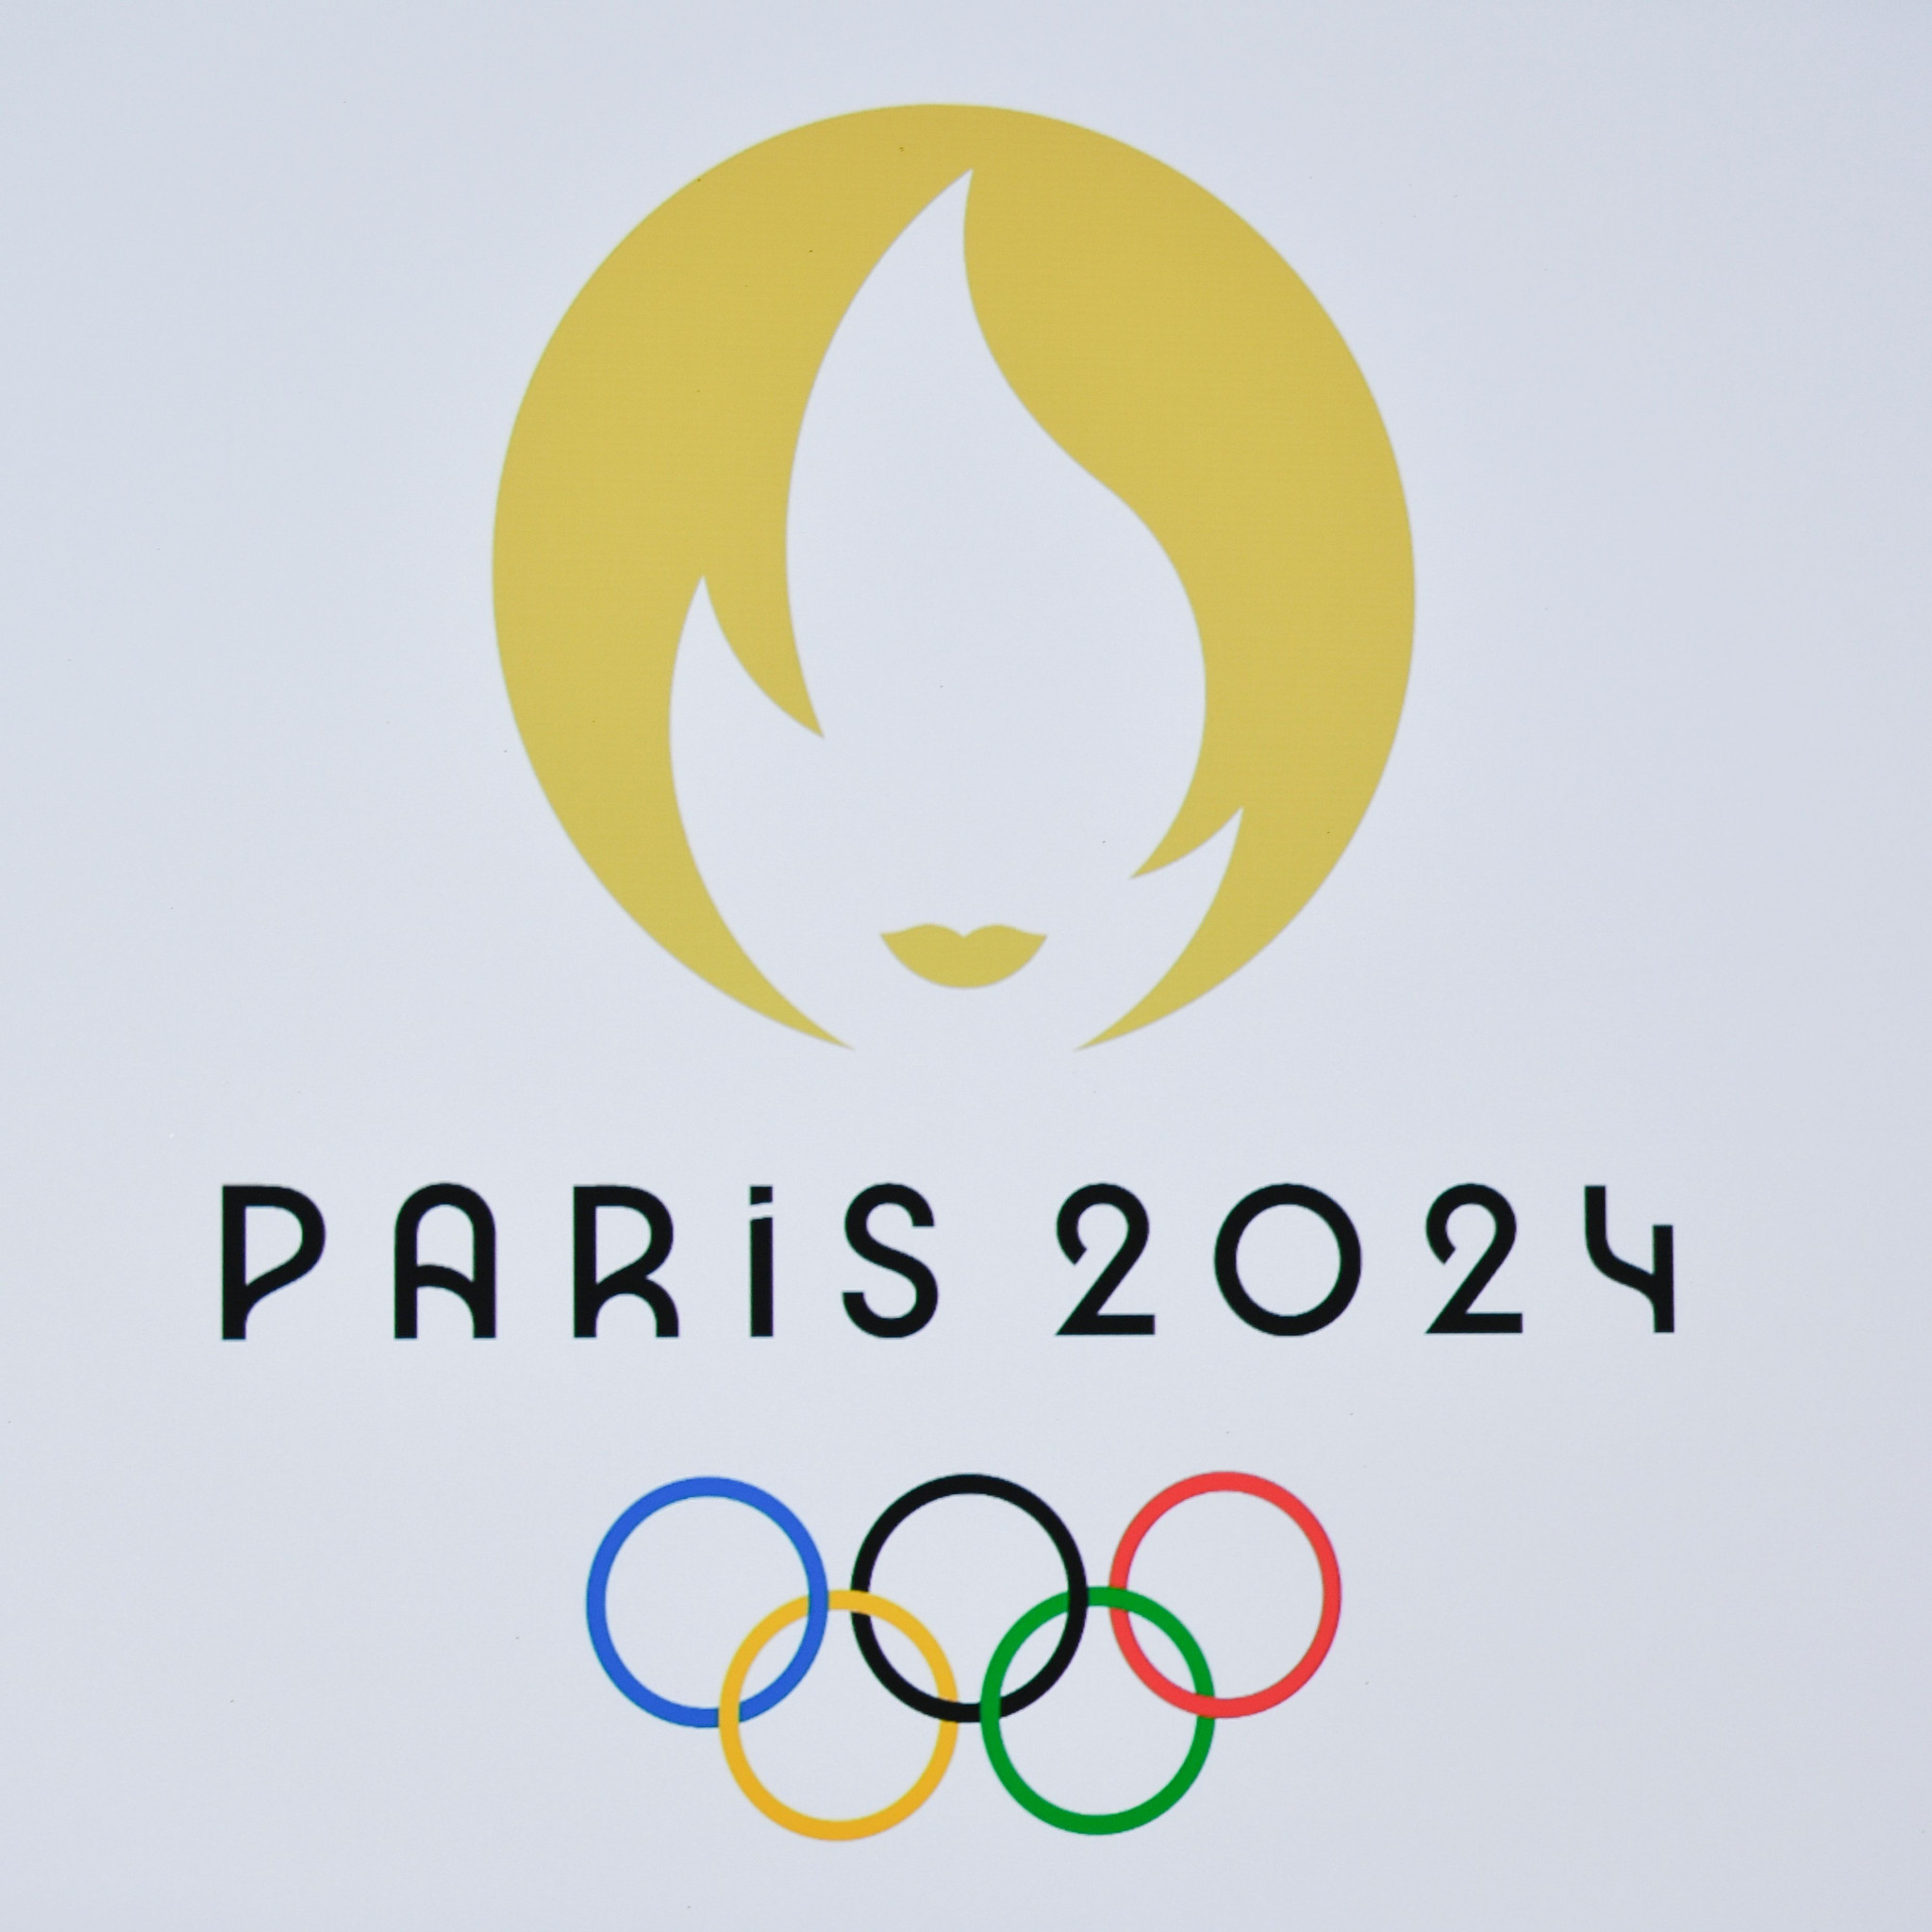 Paris 2024 seeking to reduce competition sites to aid budget